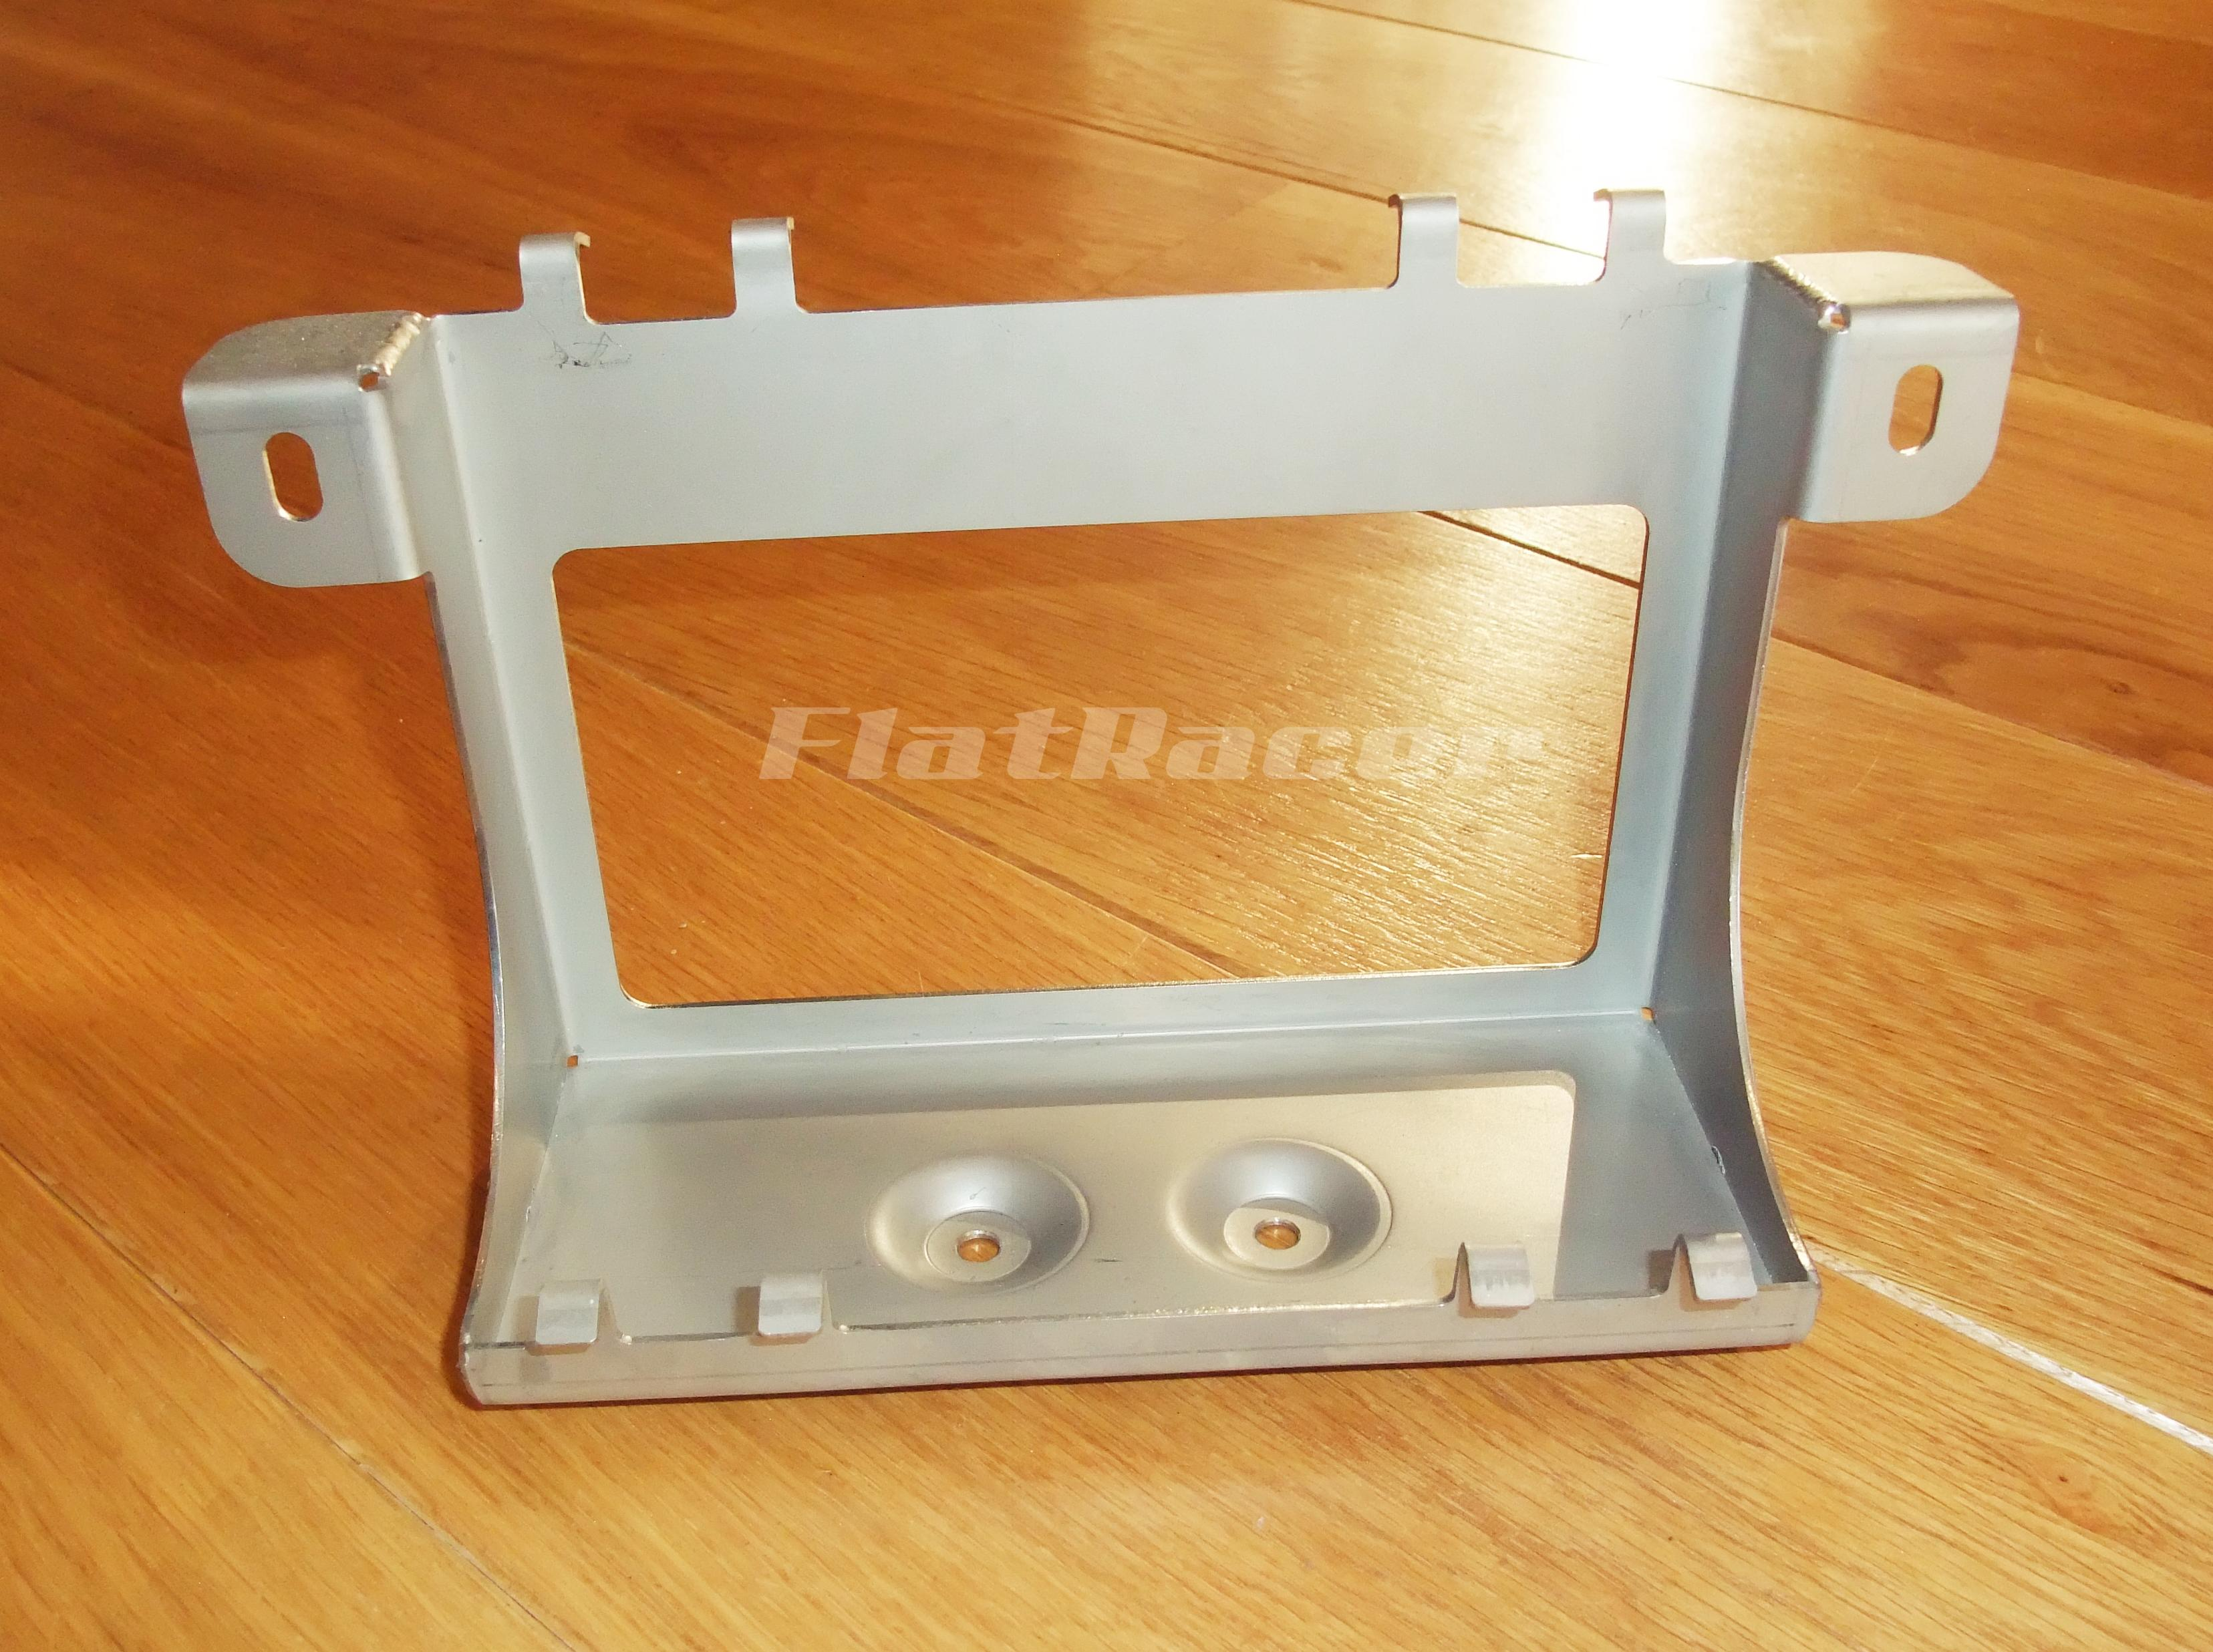 FlatRacer BMW R80 G/S, R65 GS & R80ST stainless steel battery tray